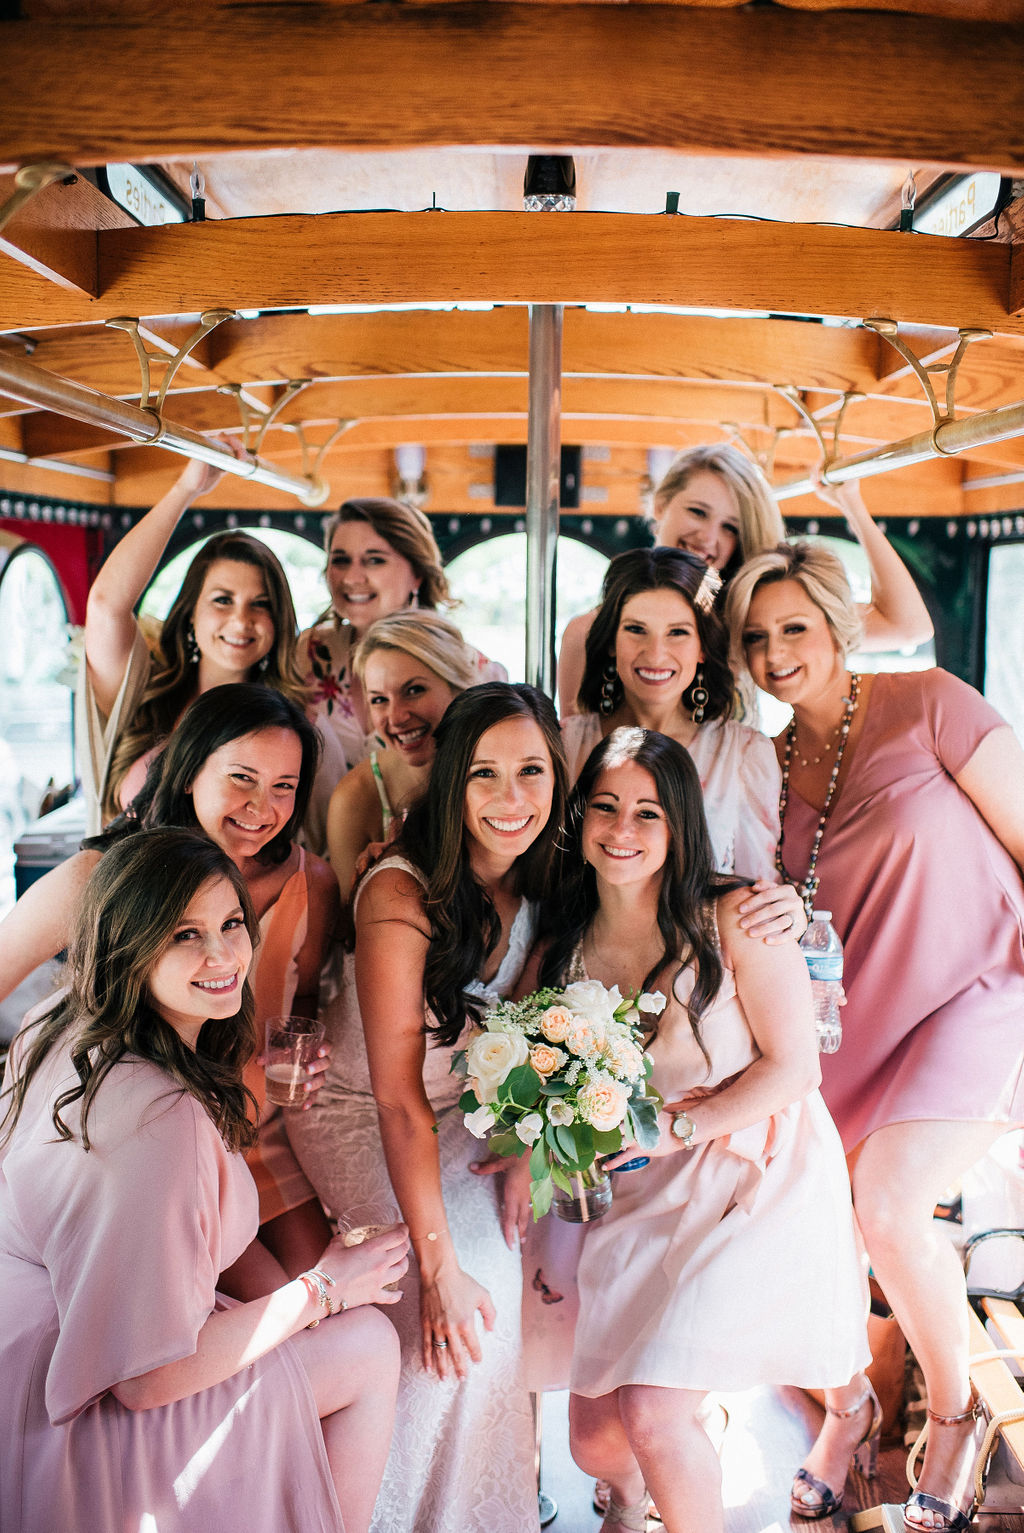 Pink bridesmaids dresses: Intimate Wedding Celebration by Details Nashville